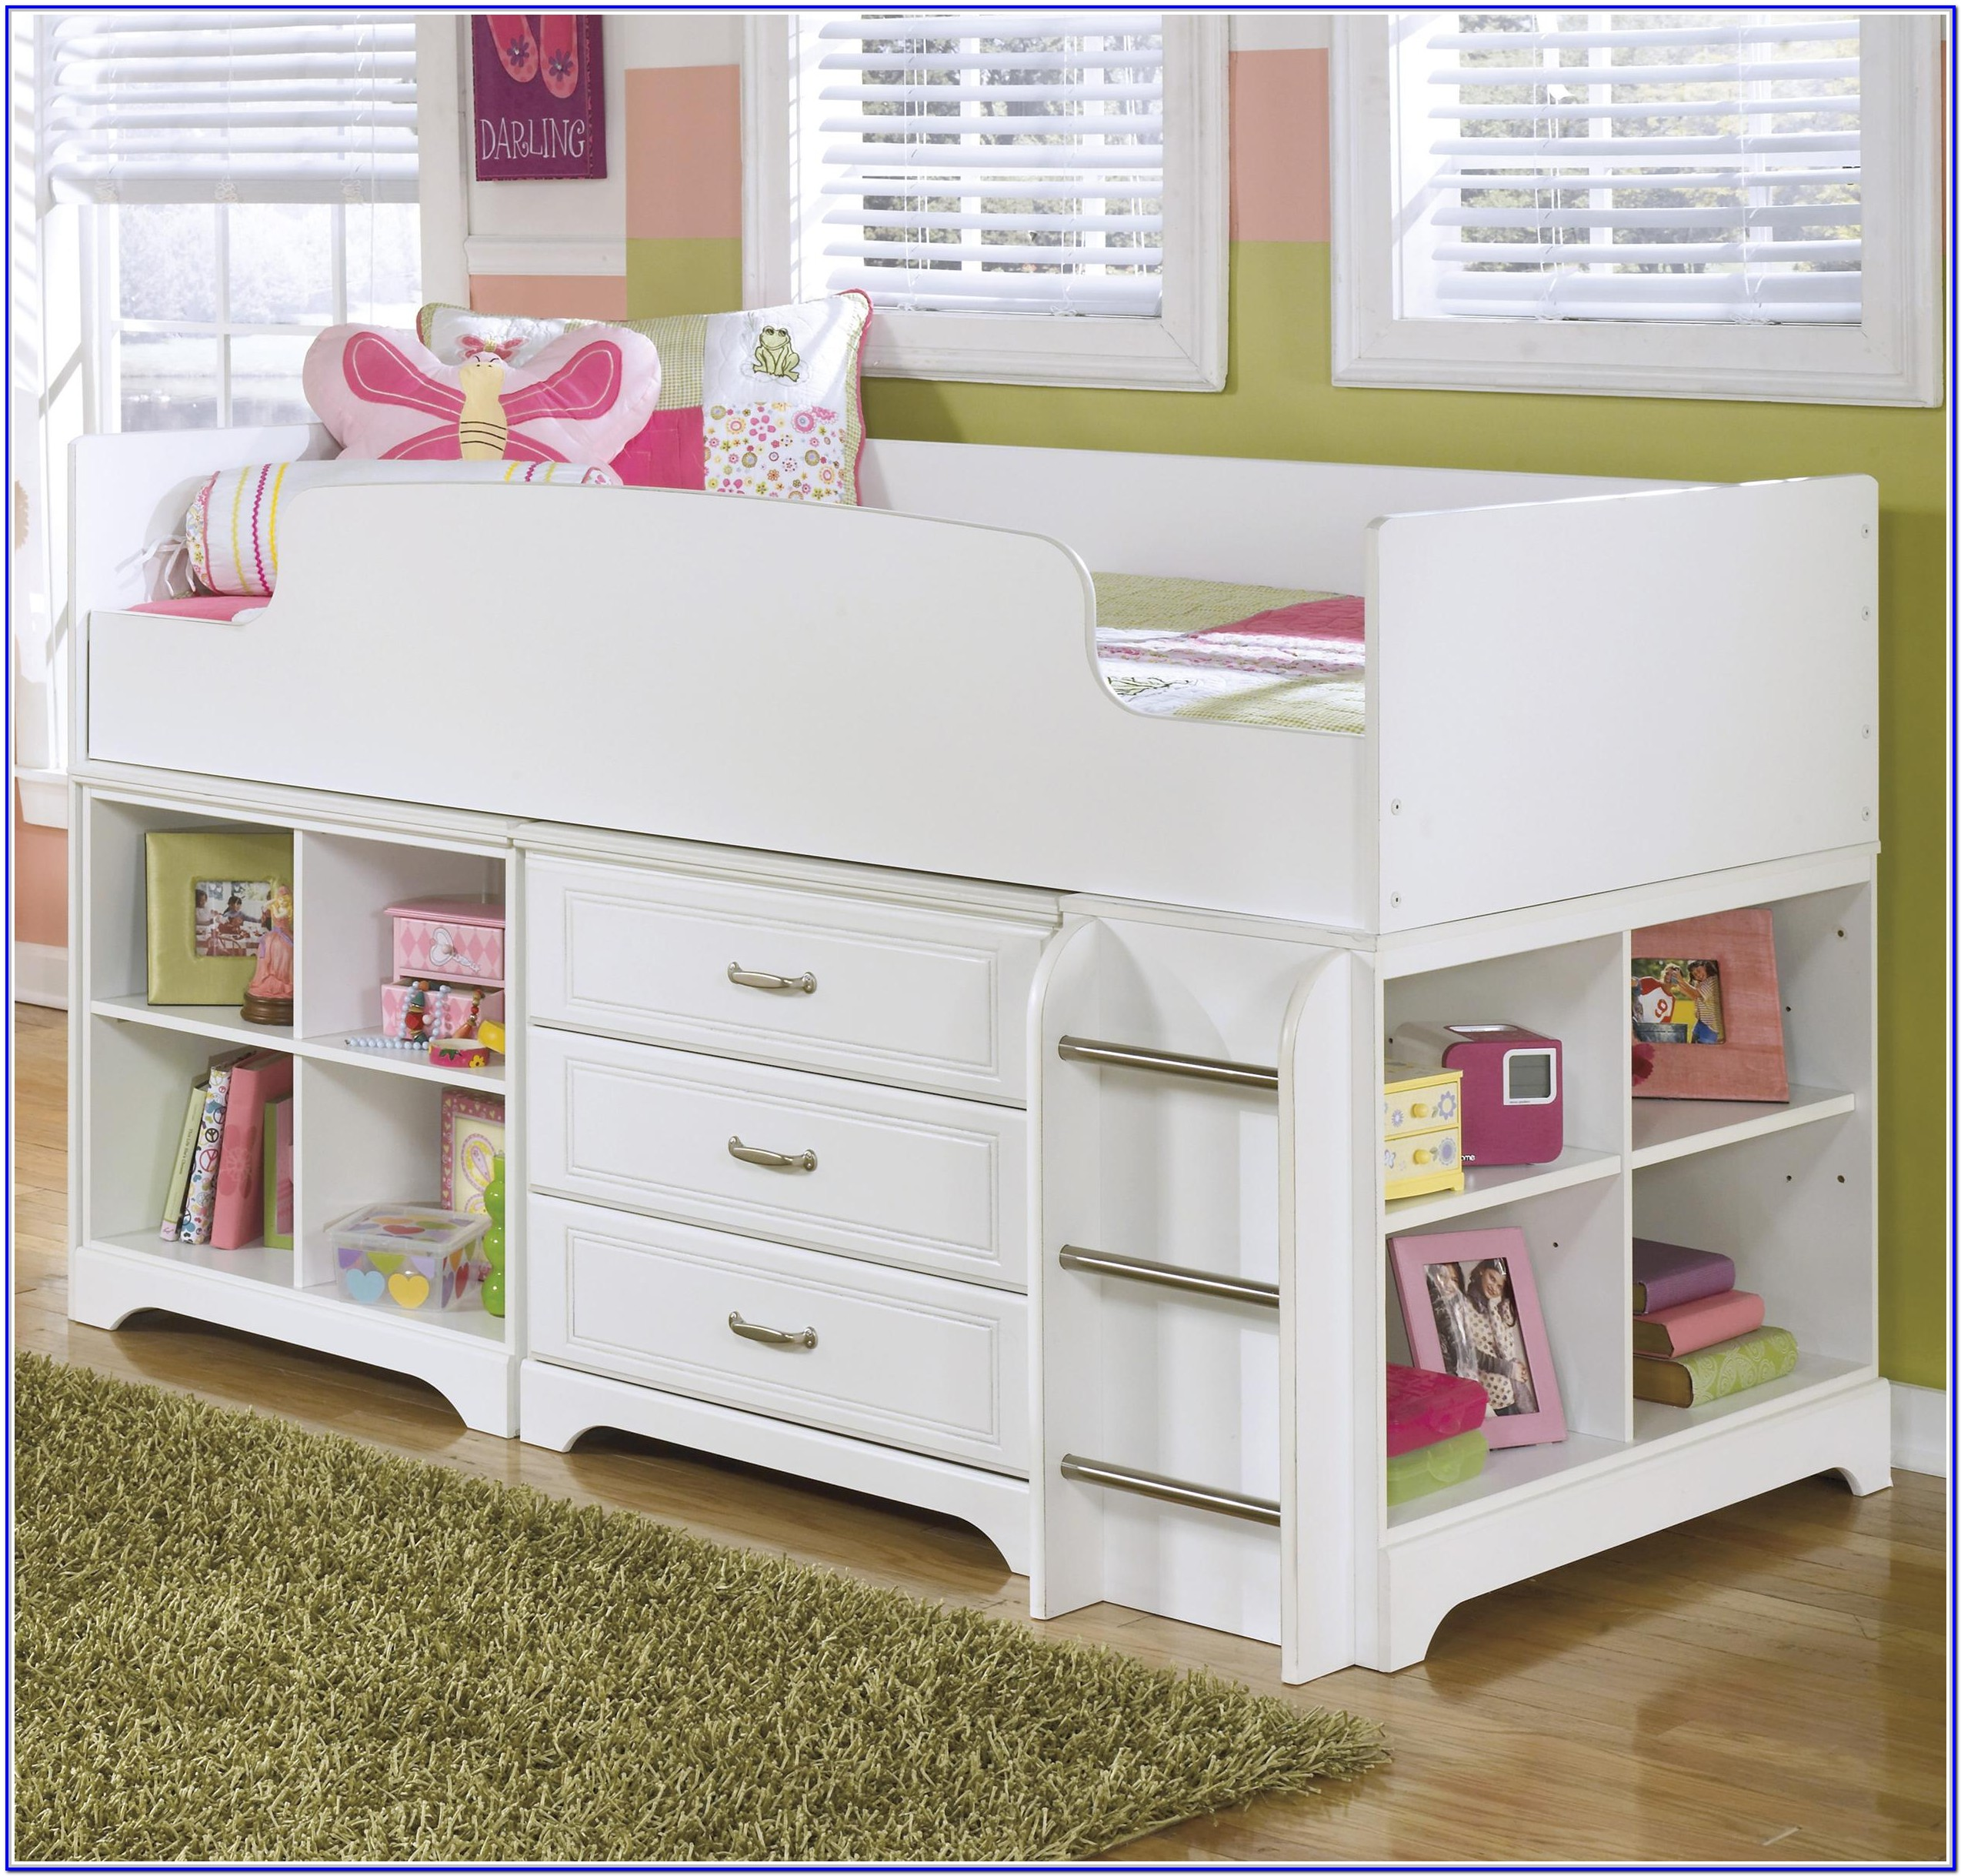 Ashley Furniture Bunk Beds With Storage